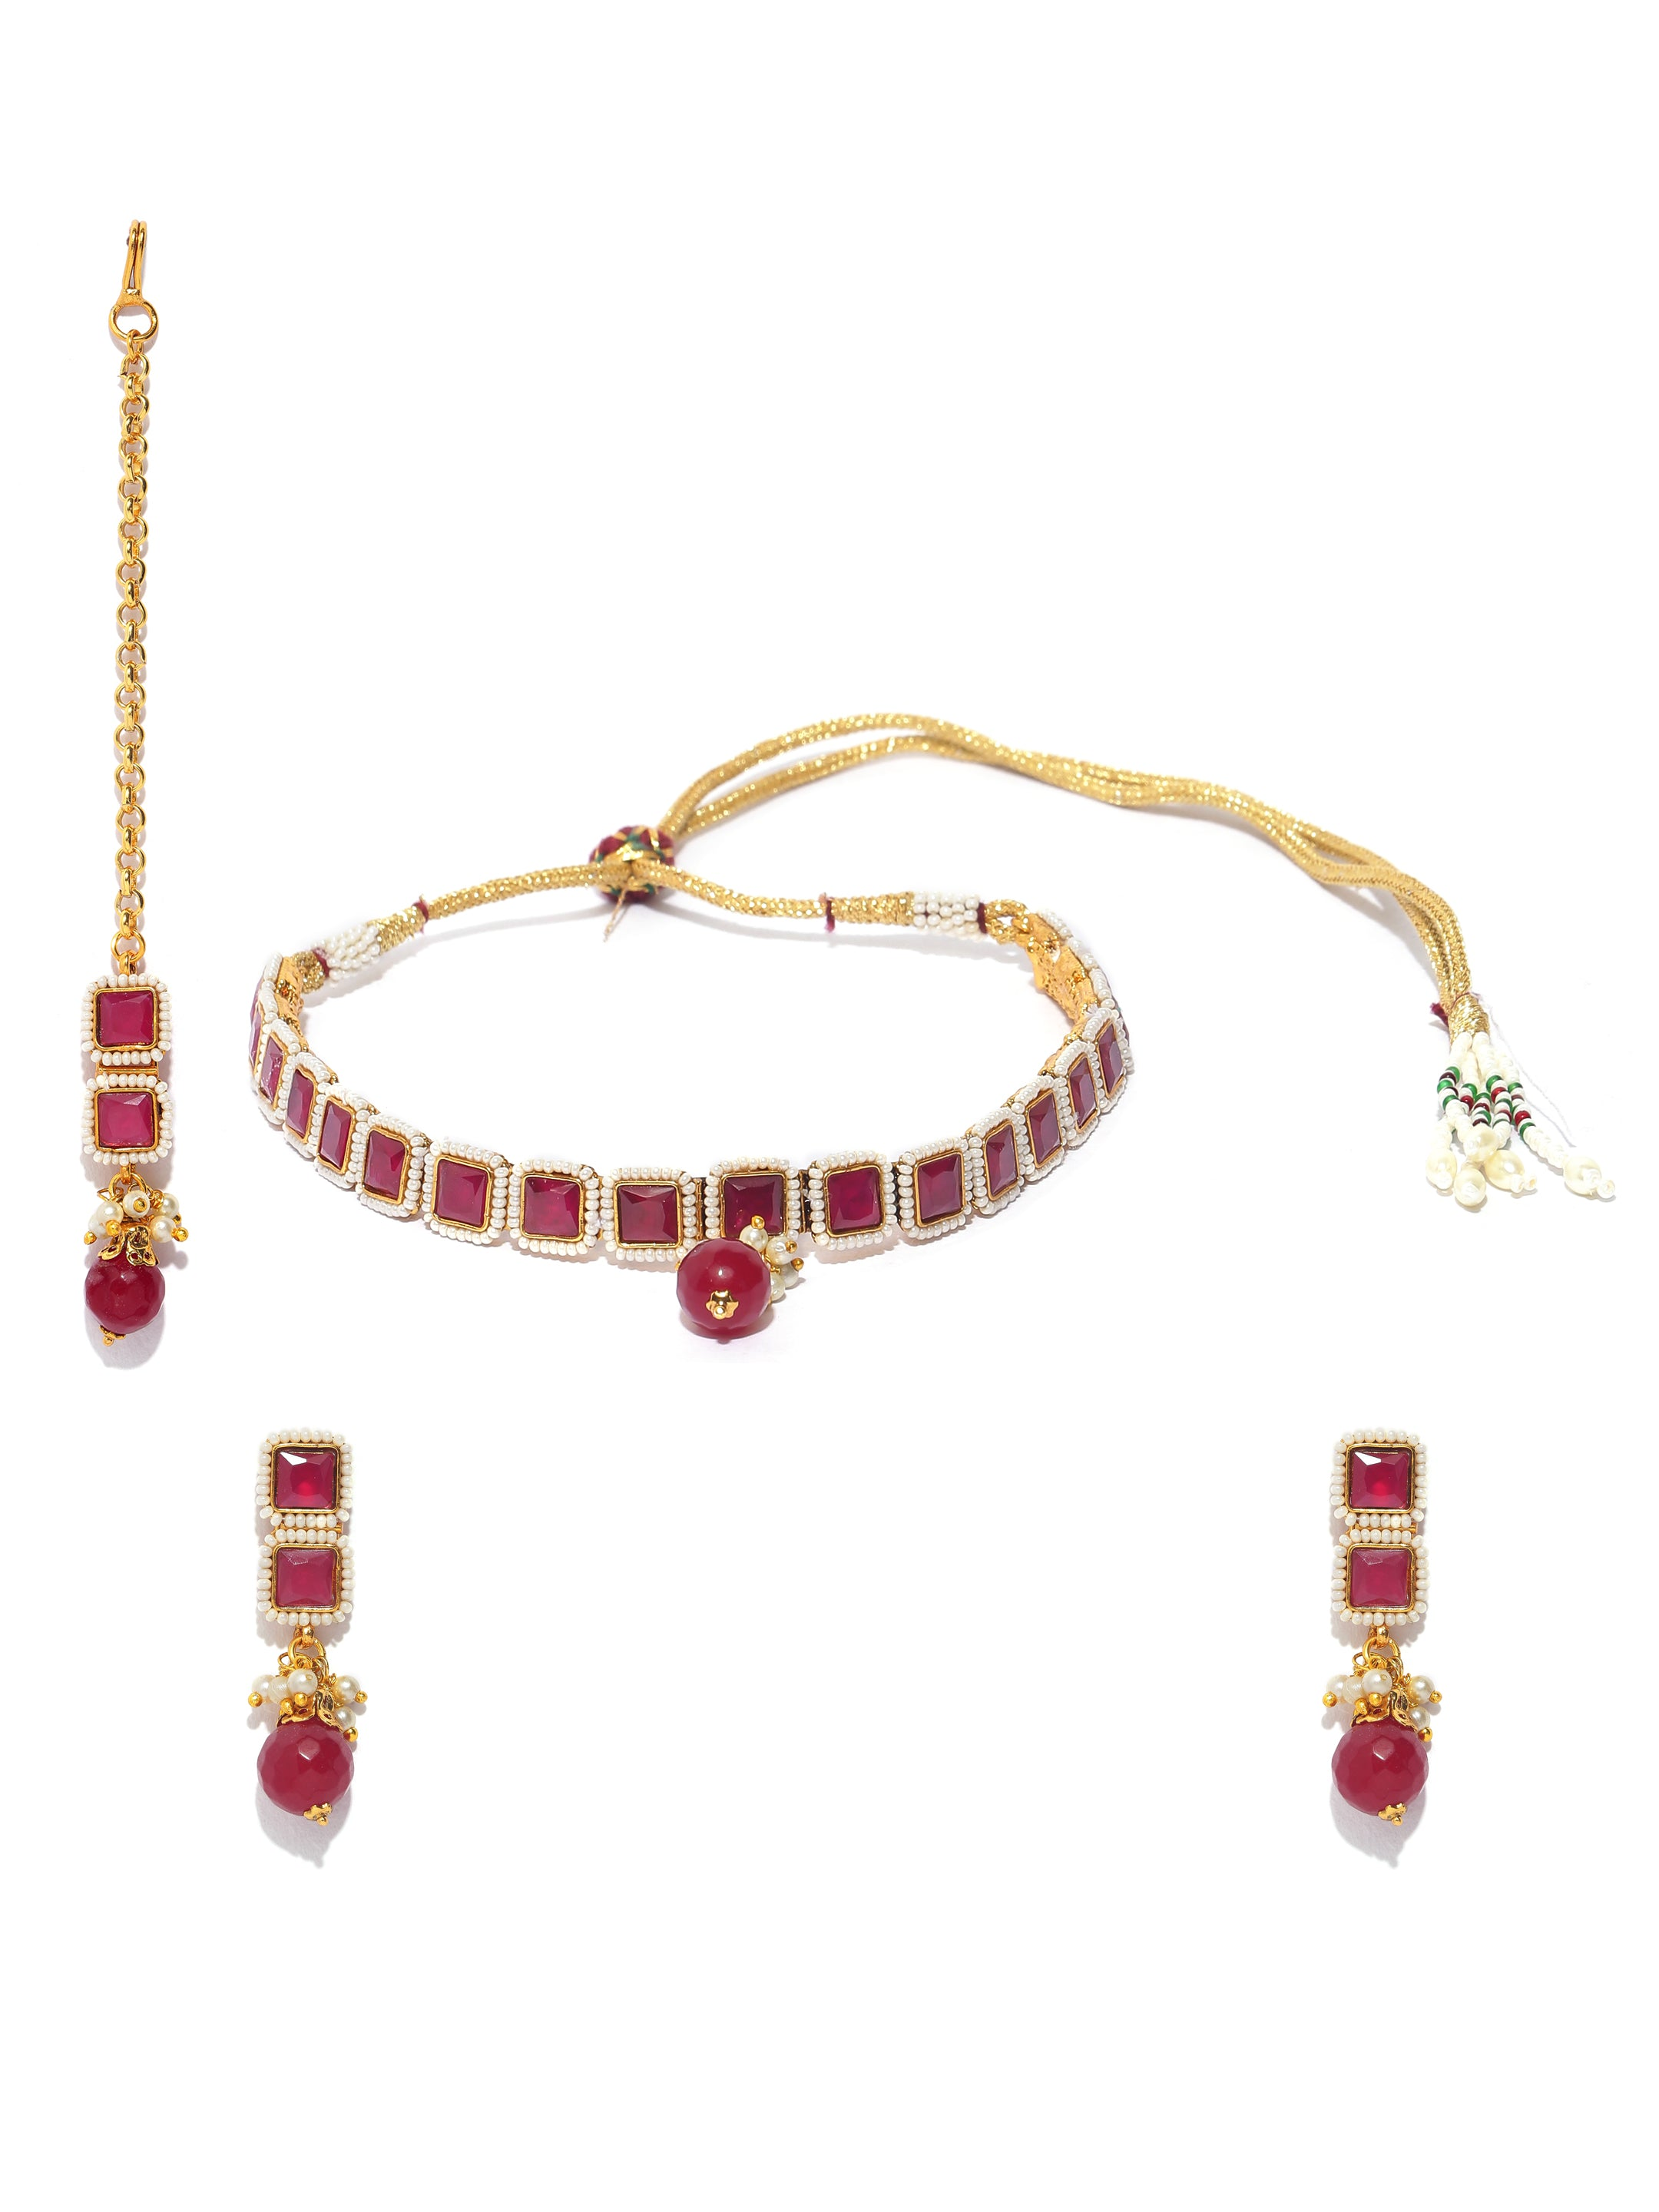 Pretty High Quality Red Color Choker Necklace Set With maang Tikka-ARADHYAA JEWEL ARTS1-Jewellery Set